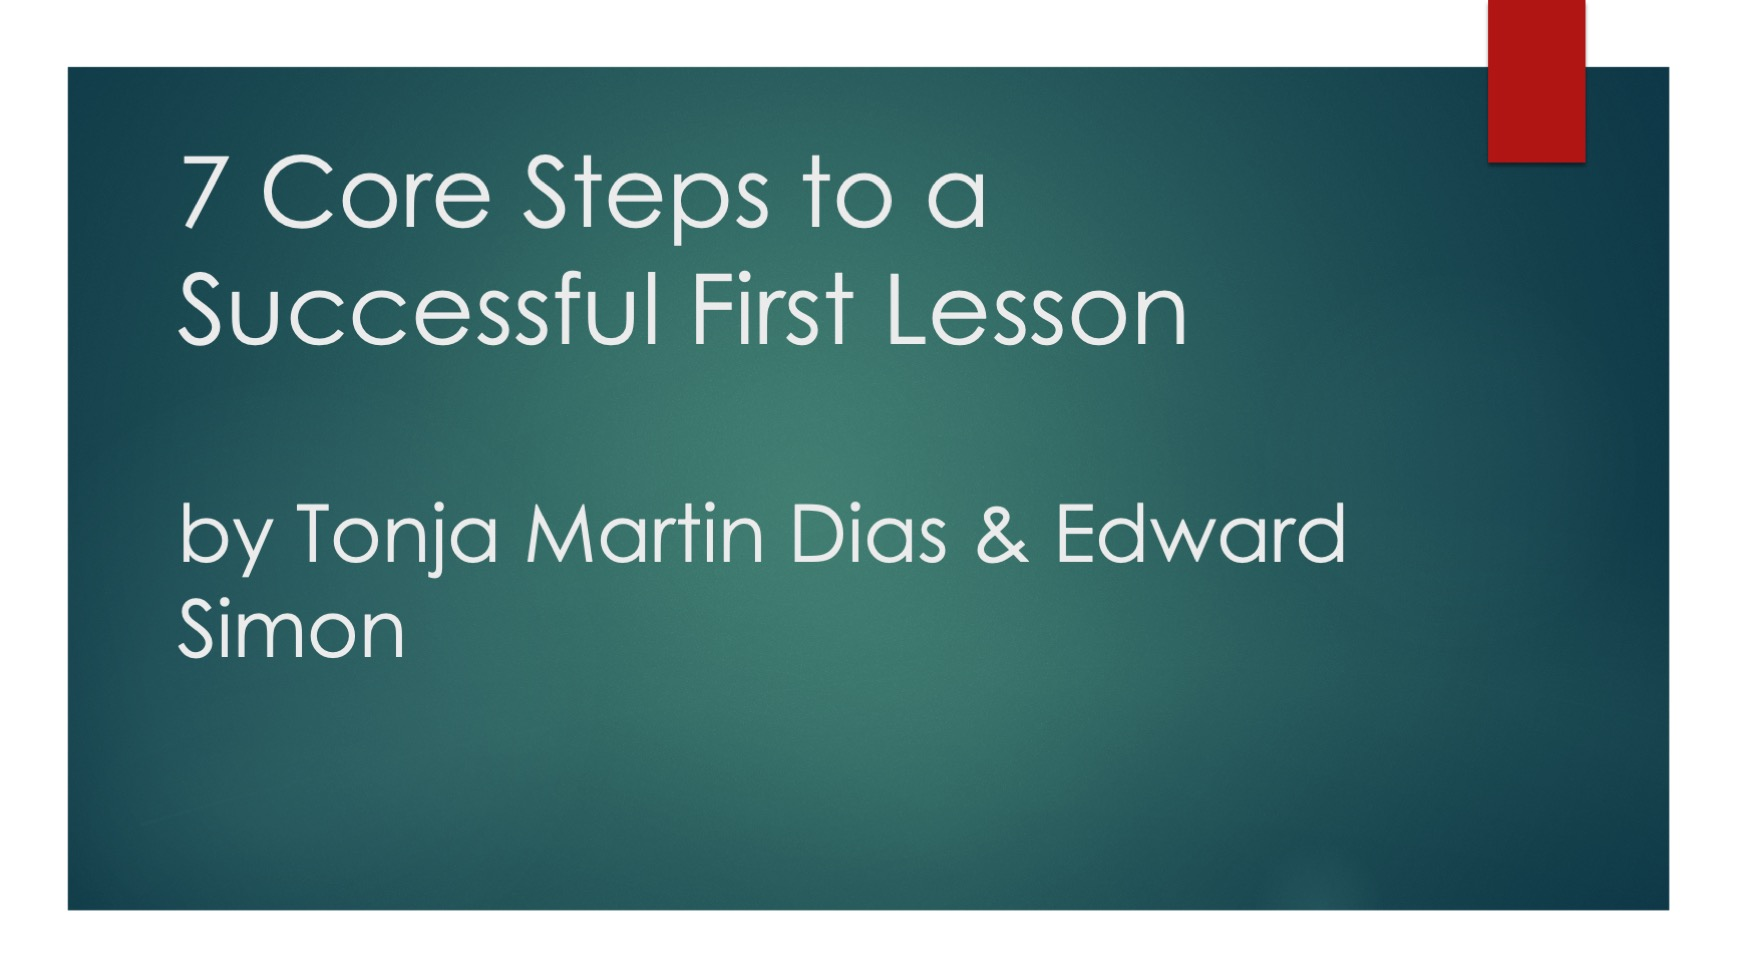 7 Core Steps to a Successful First Lesson